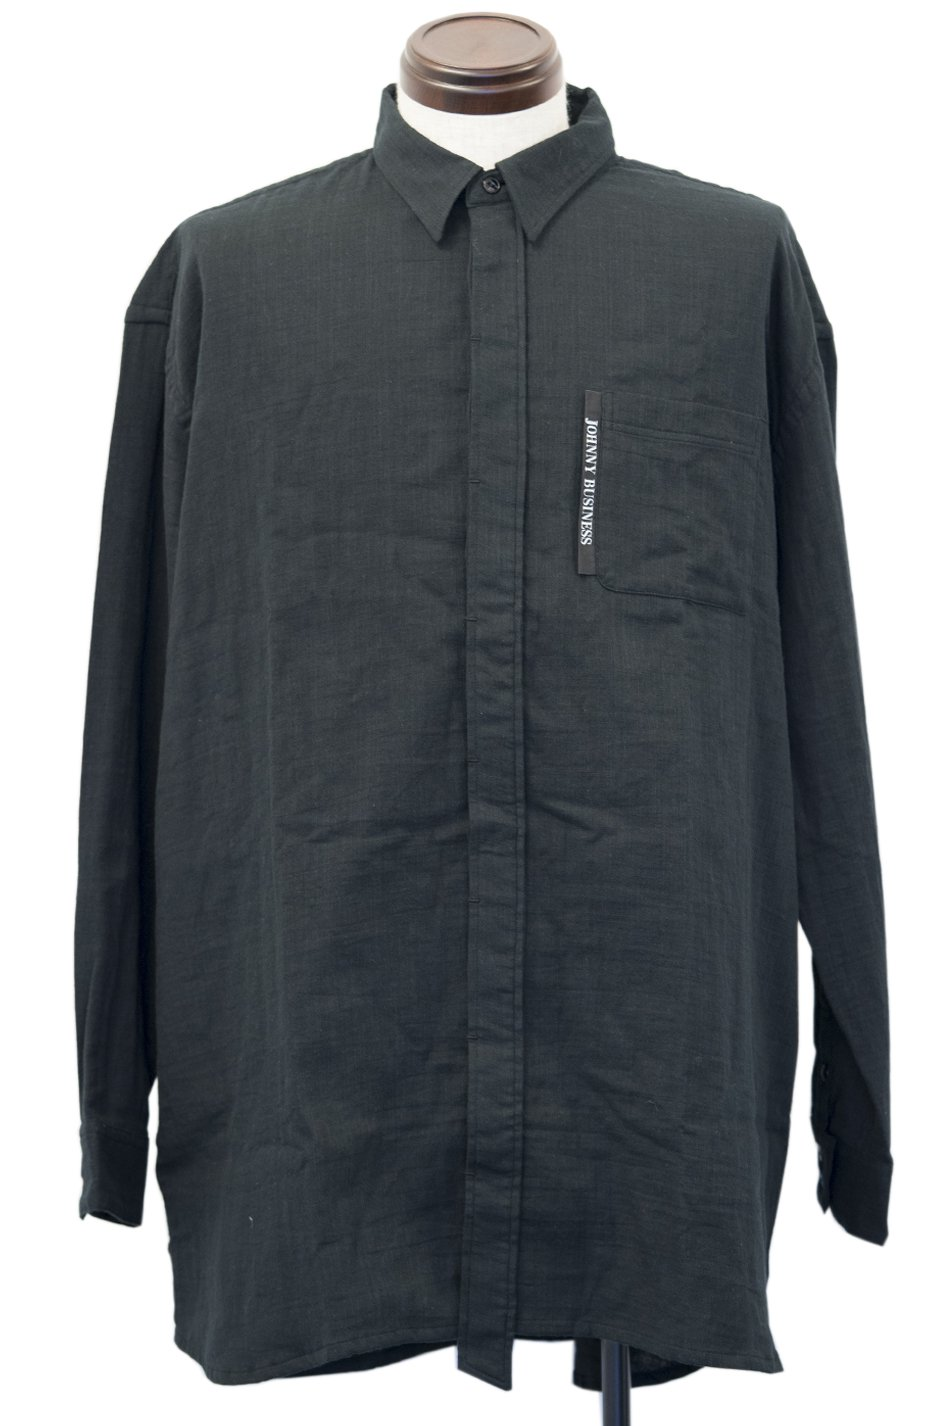 In The Tokyo Shirts/Black